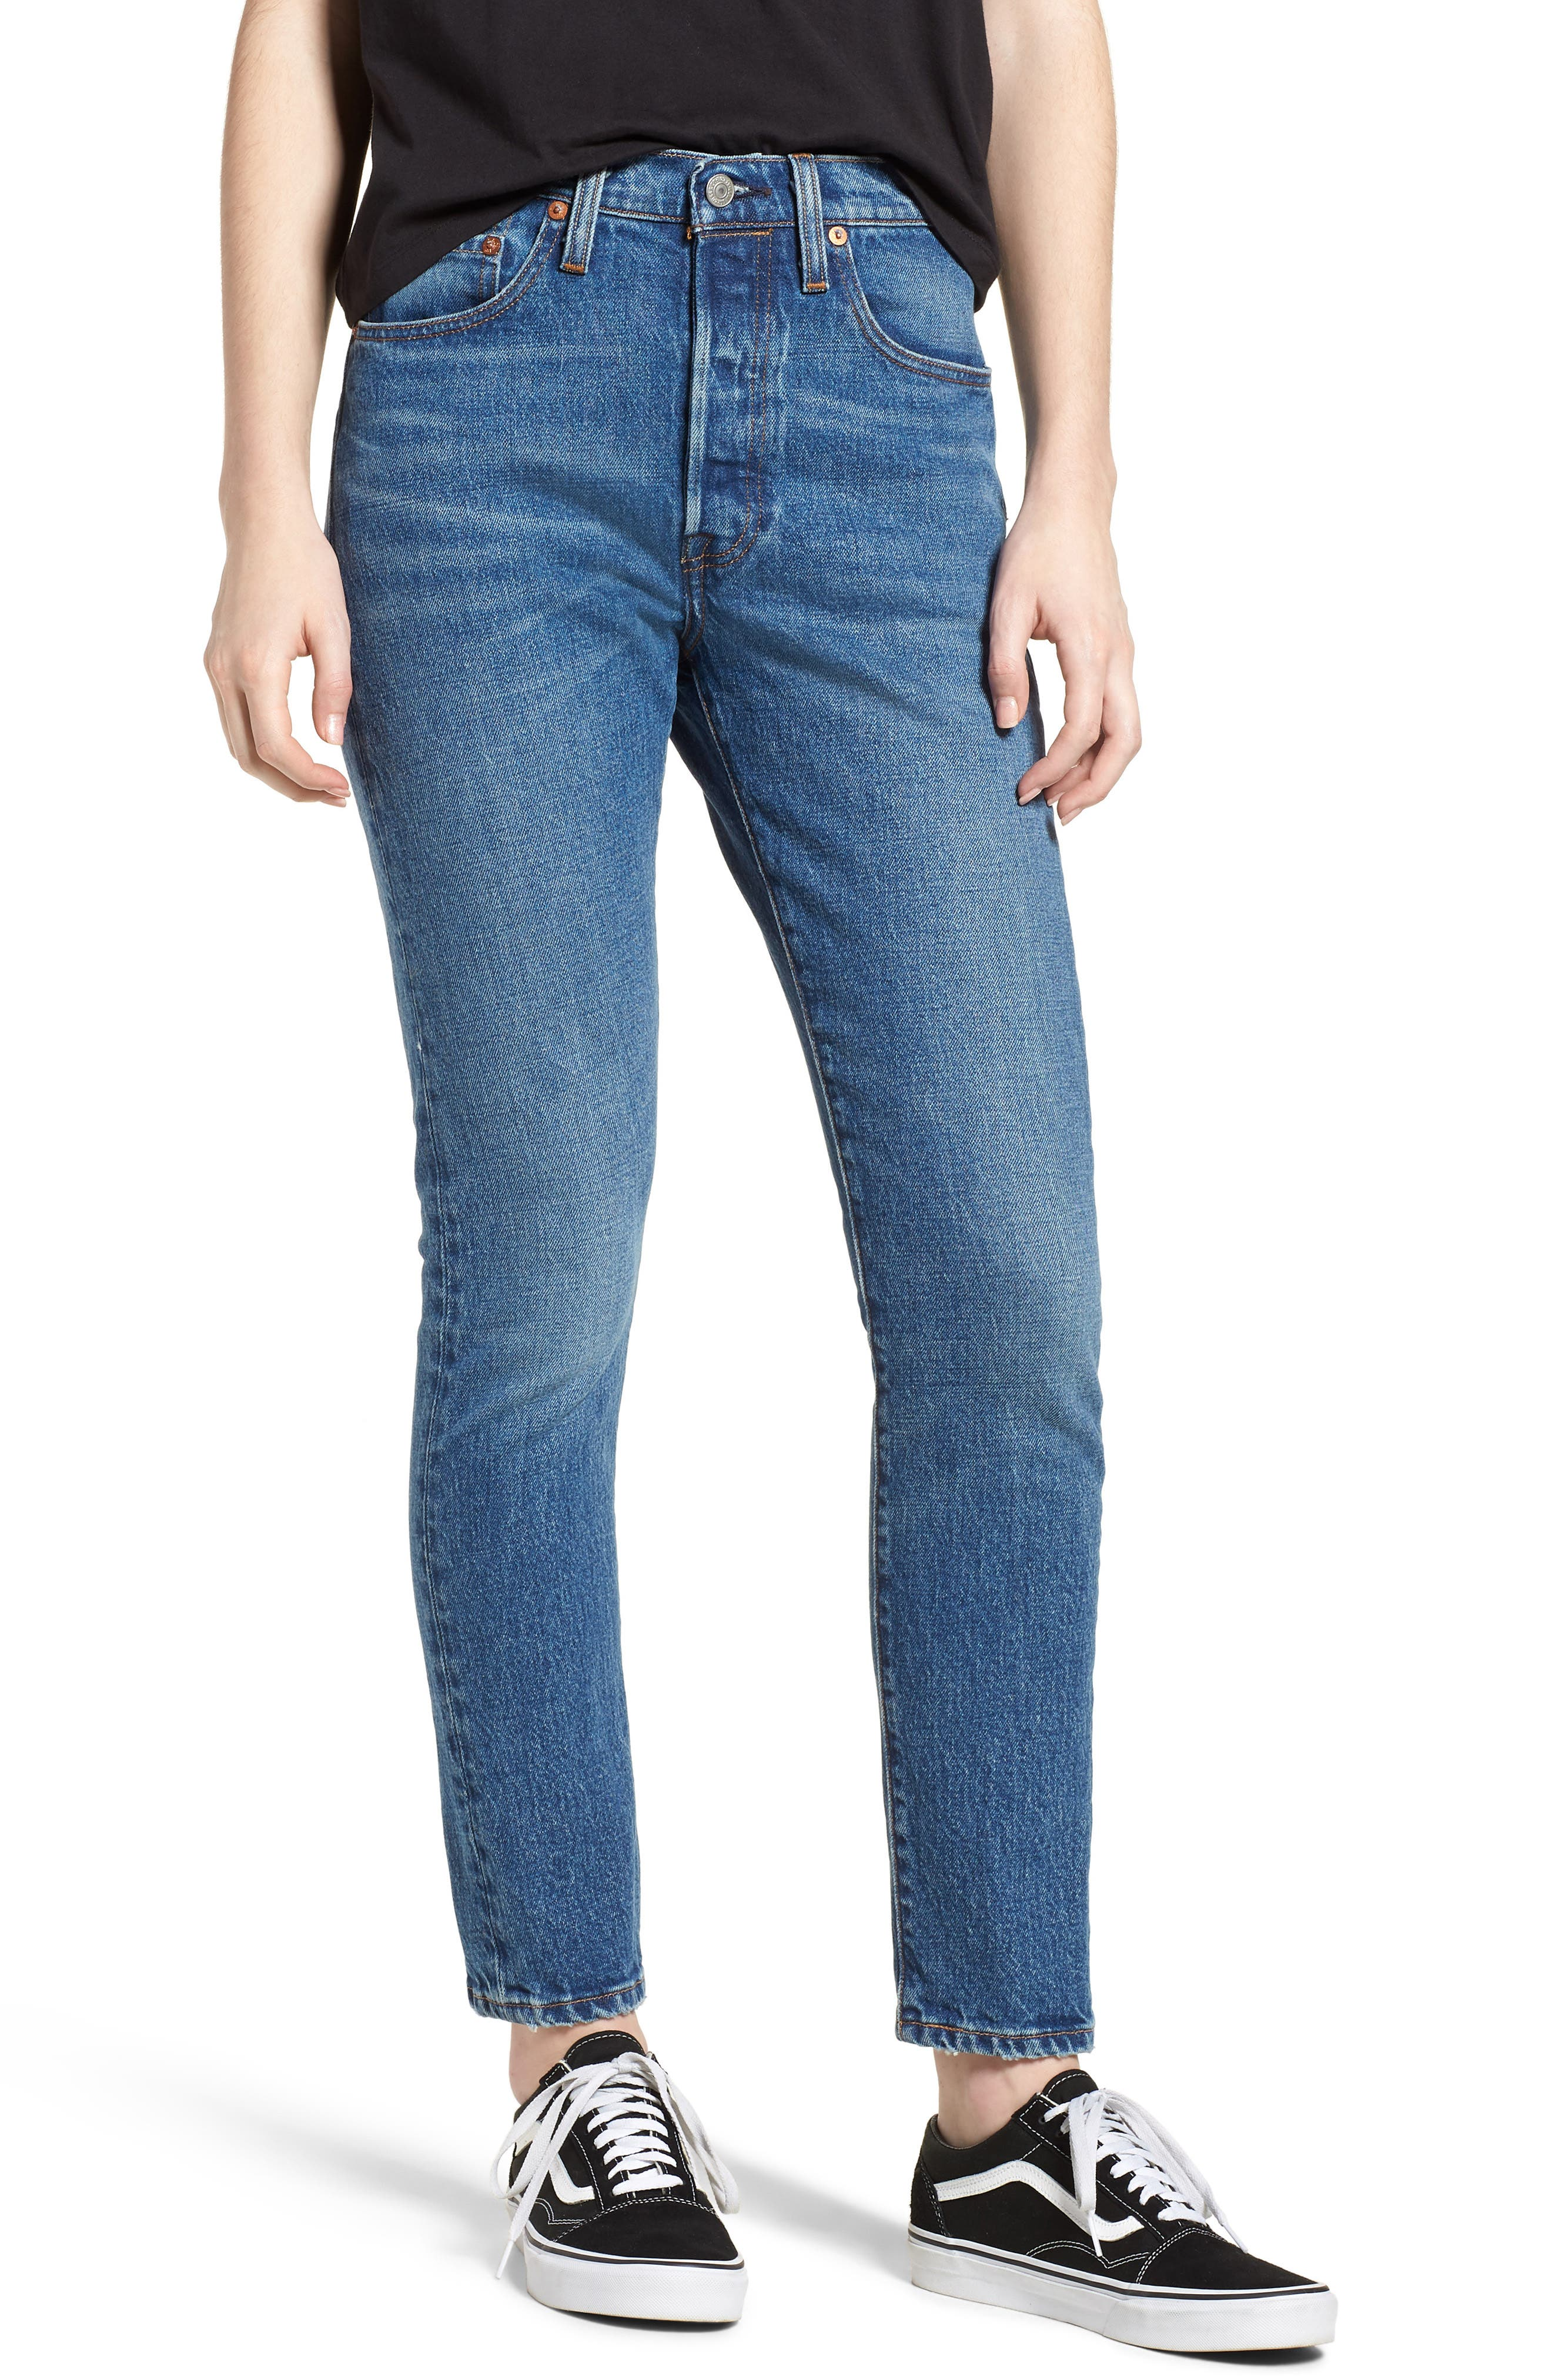 501 Skinny Stretch Jeans In We The People